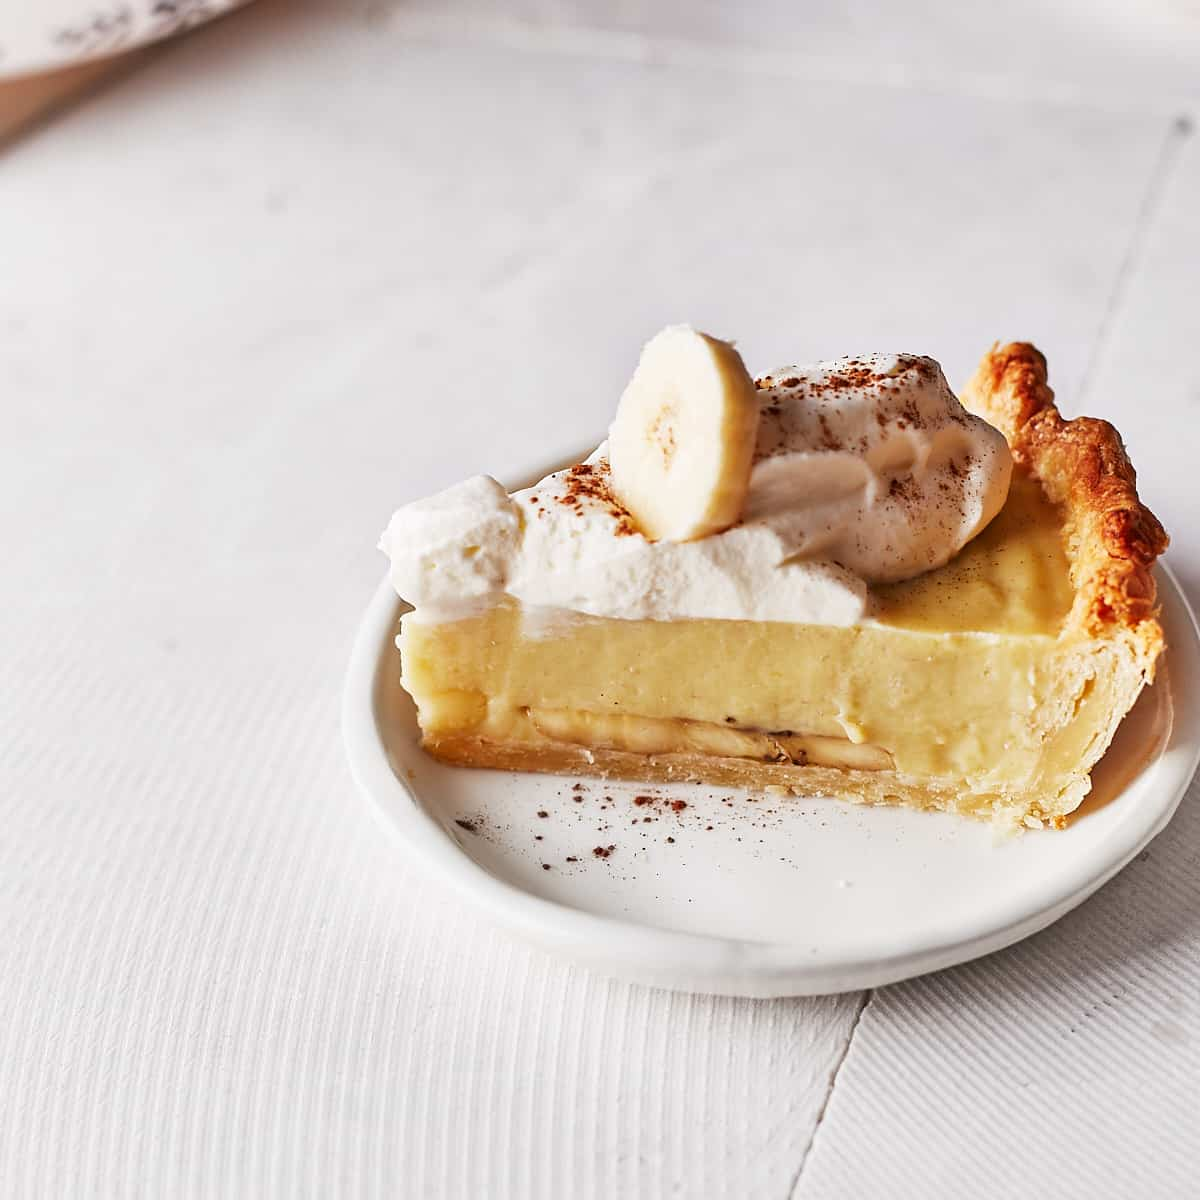 Decorative picture of a cut banana cream pie slice on a white plate